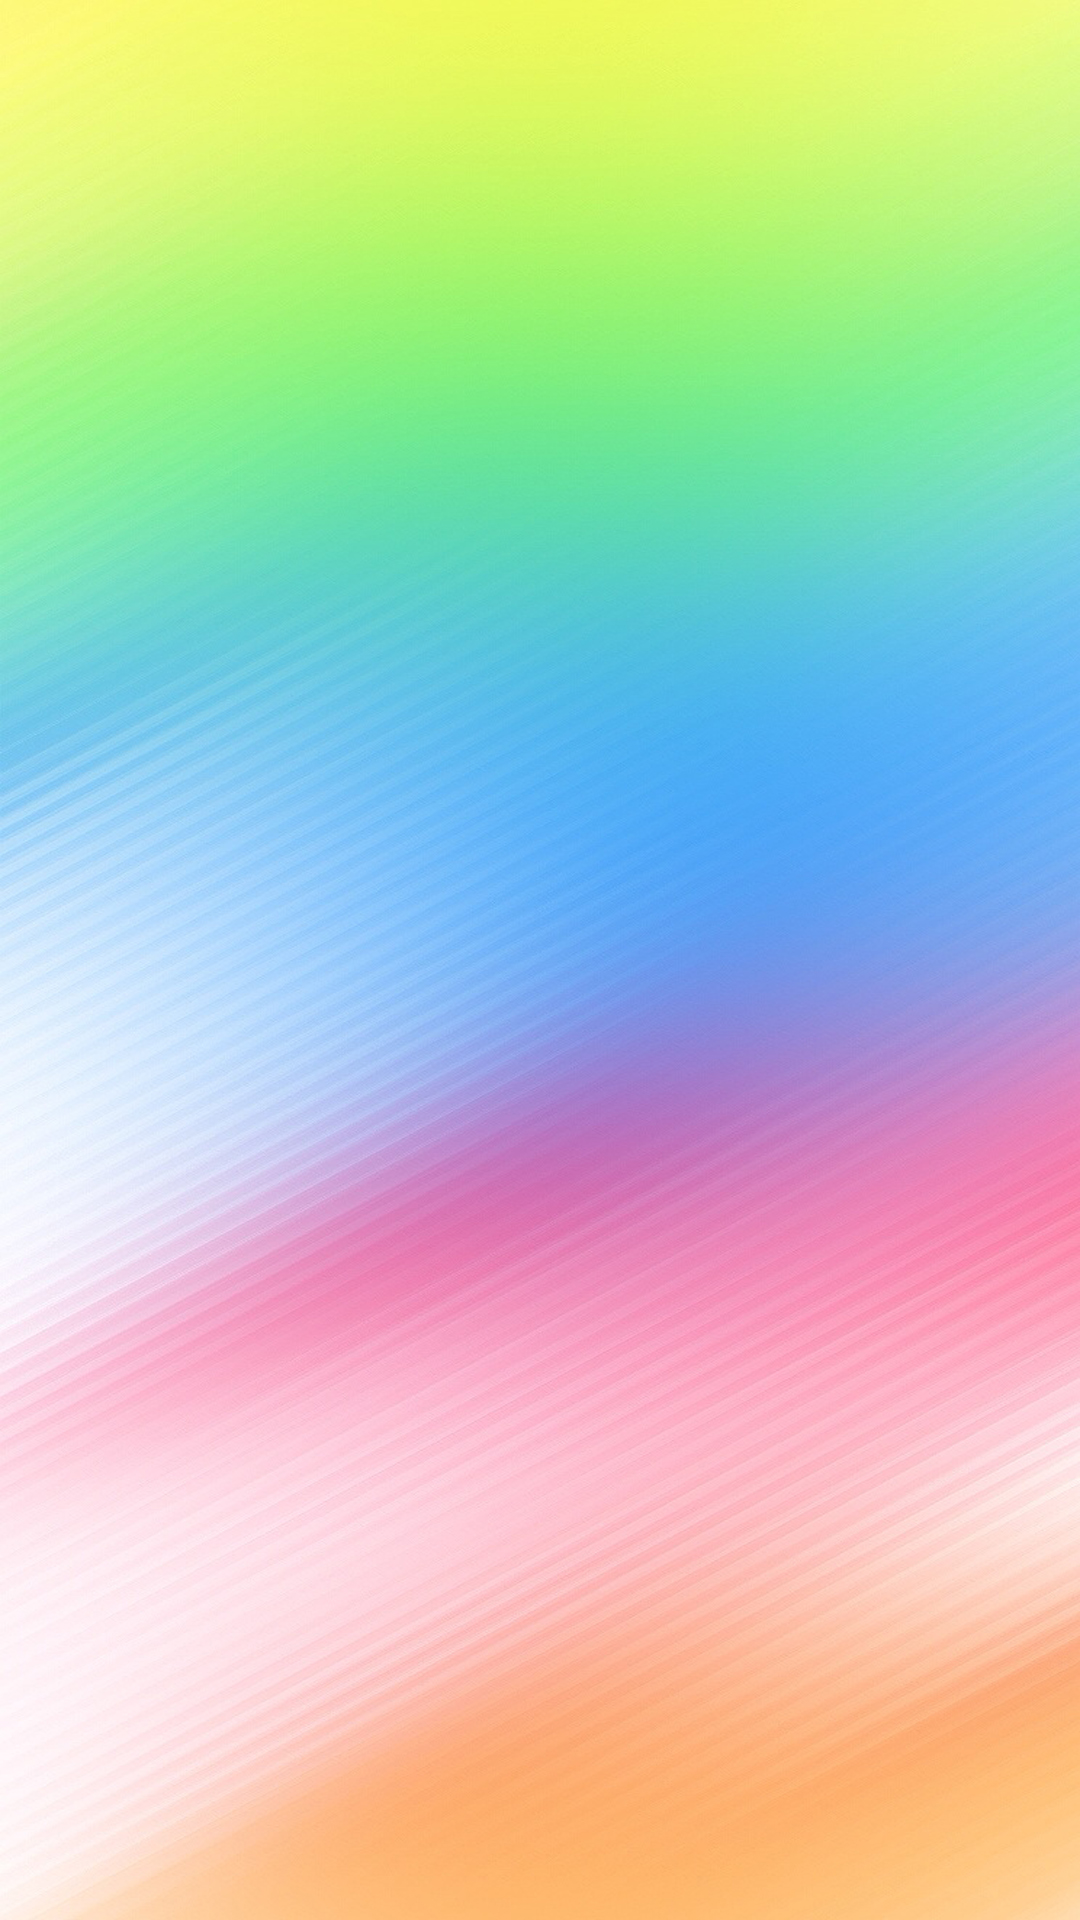 Download iOS 8 Wallpapers for Android 1080x1920